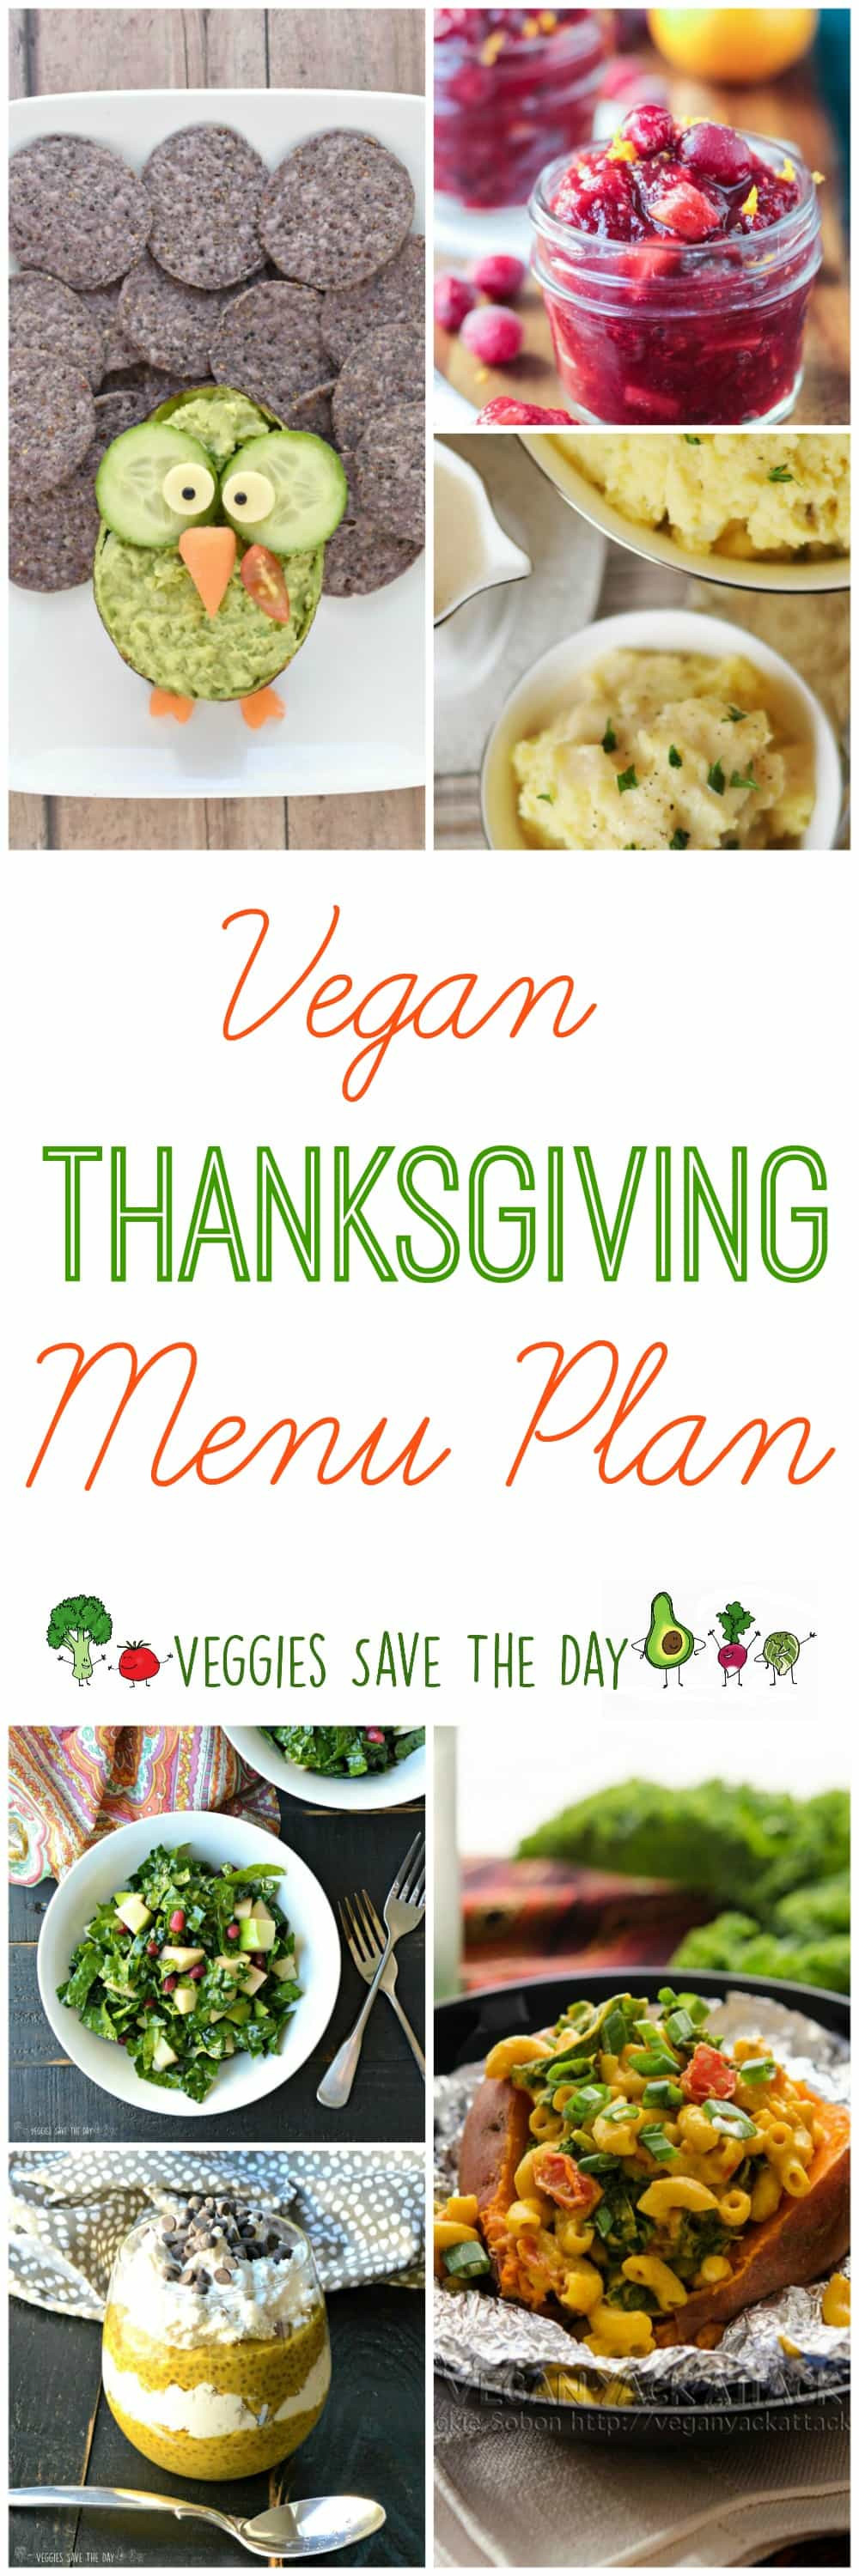 Vegan Thanksgiving Menu  Vegan Thanksgiving Menu Plan Veggies Save The Day